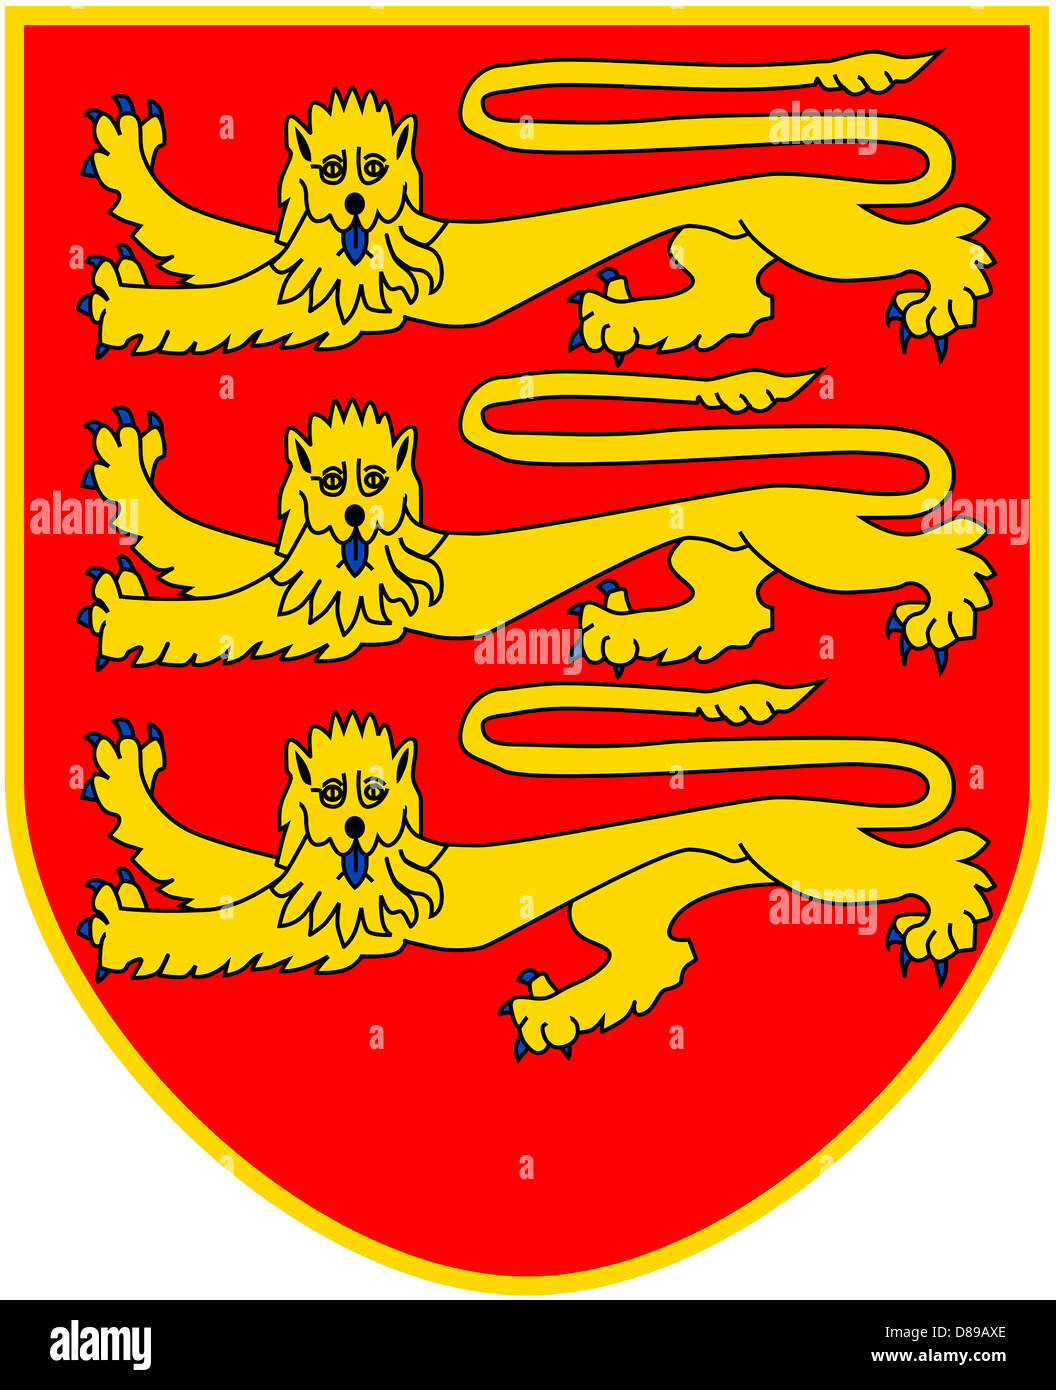 Coat of arms of the British Crown Dependency Jersey. - Stock Image